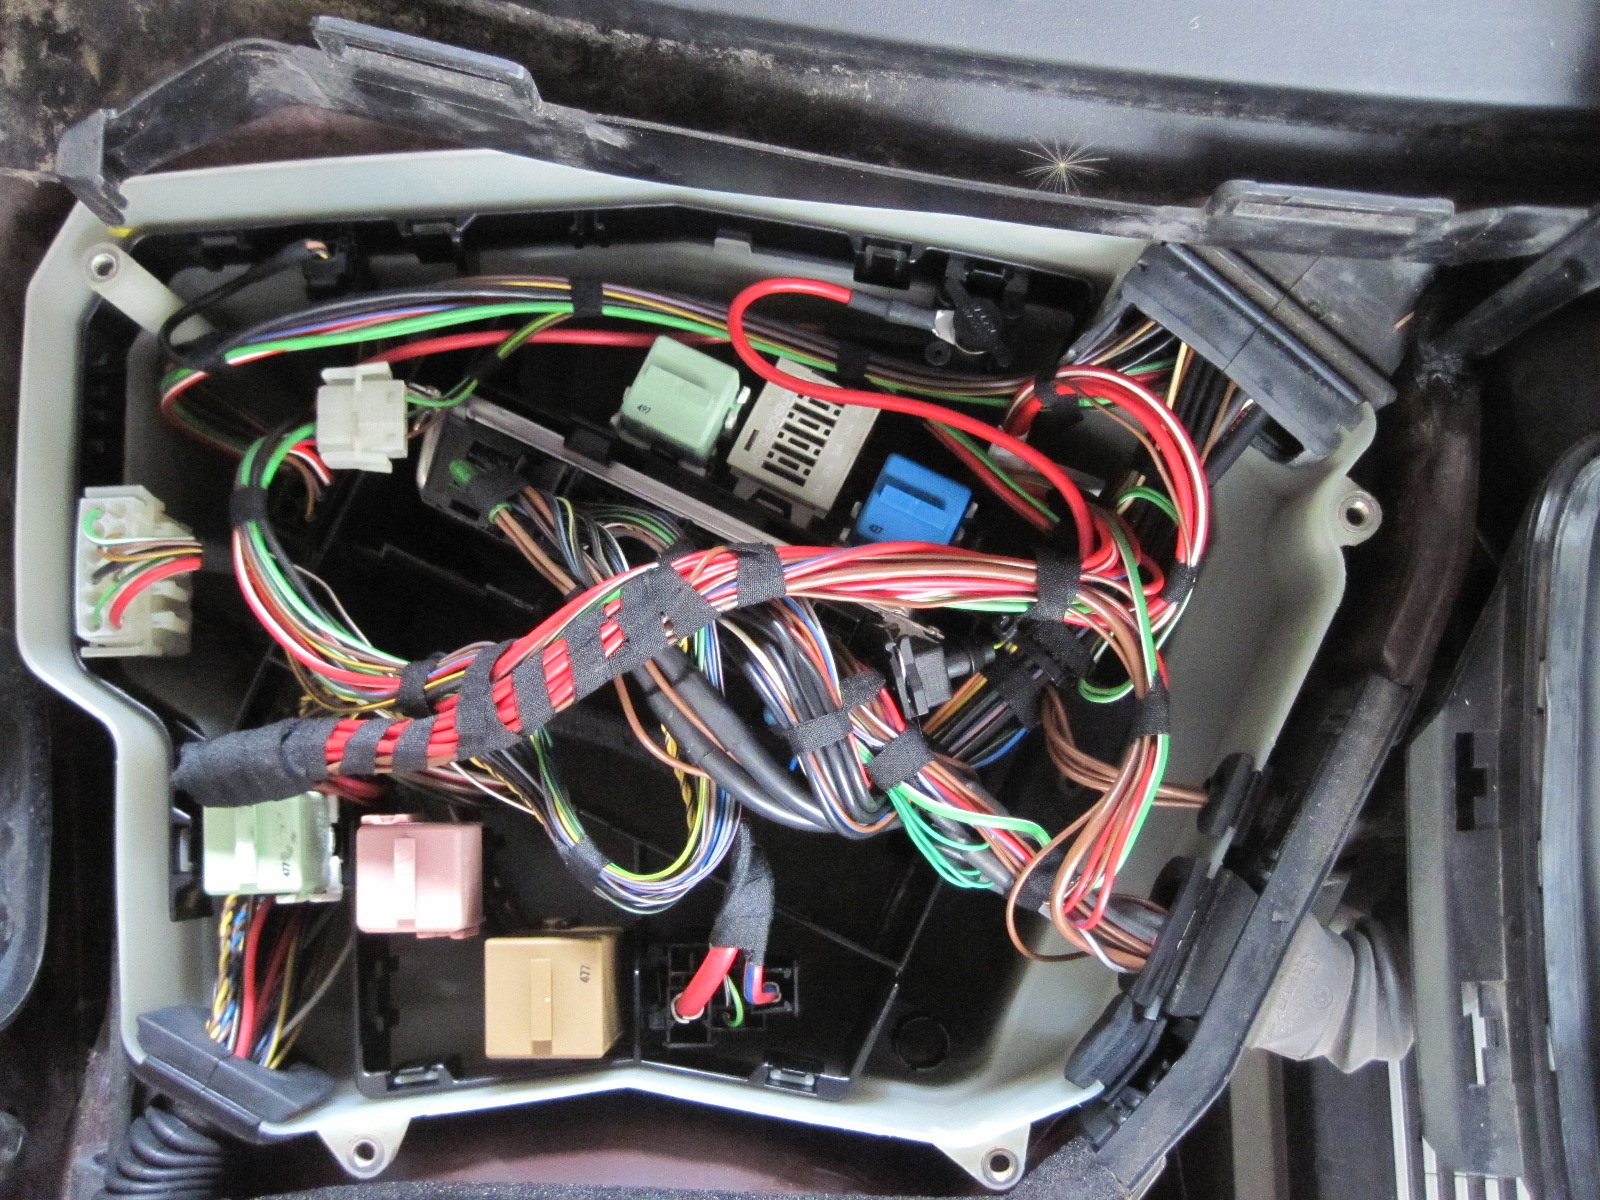 2006 Bmw X5 Wiring Schematics Cannot Connect To Dme Bmw M5 Forum And M6 Forums